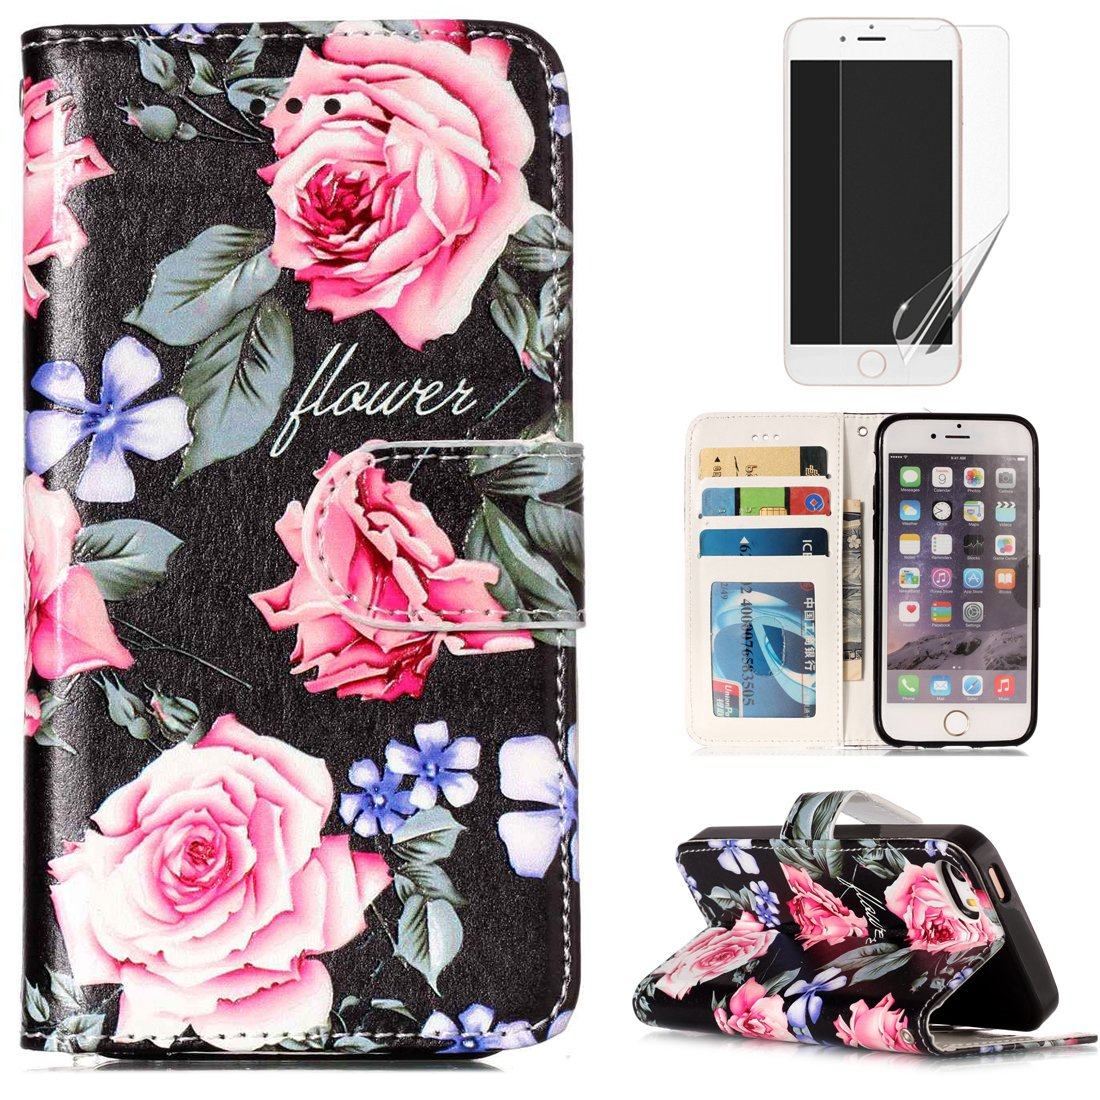 For iphone 5/5S iphone SE Case and Card Holder,OYIME [Colorful Painting Pattern] Relief Design Bookstyle Leather Wallet Holster with Wrist Lanyard Kickstand Function Full Body Protection Bumper Magnetic Closure Flip Cover with Screen Protector - Purple Lot